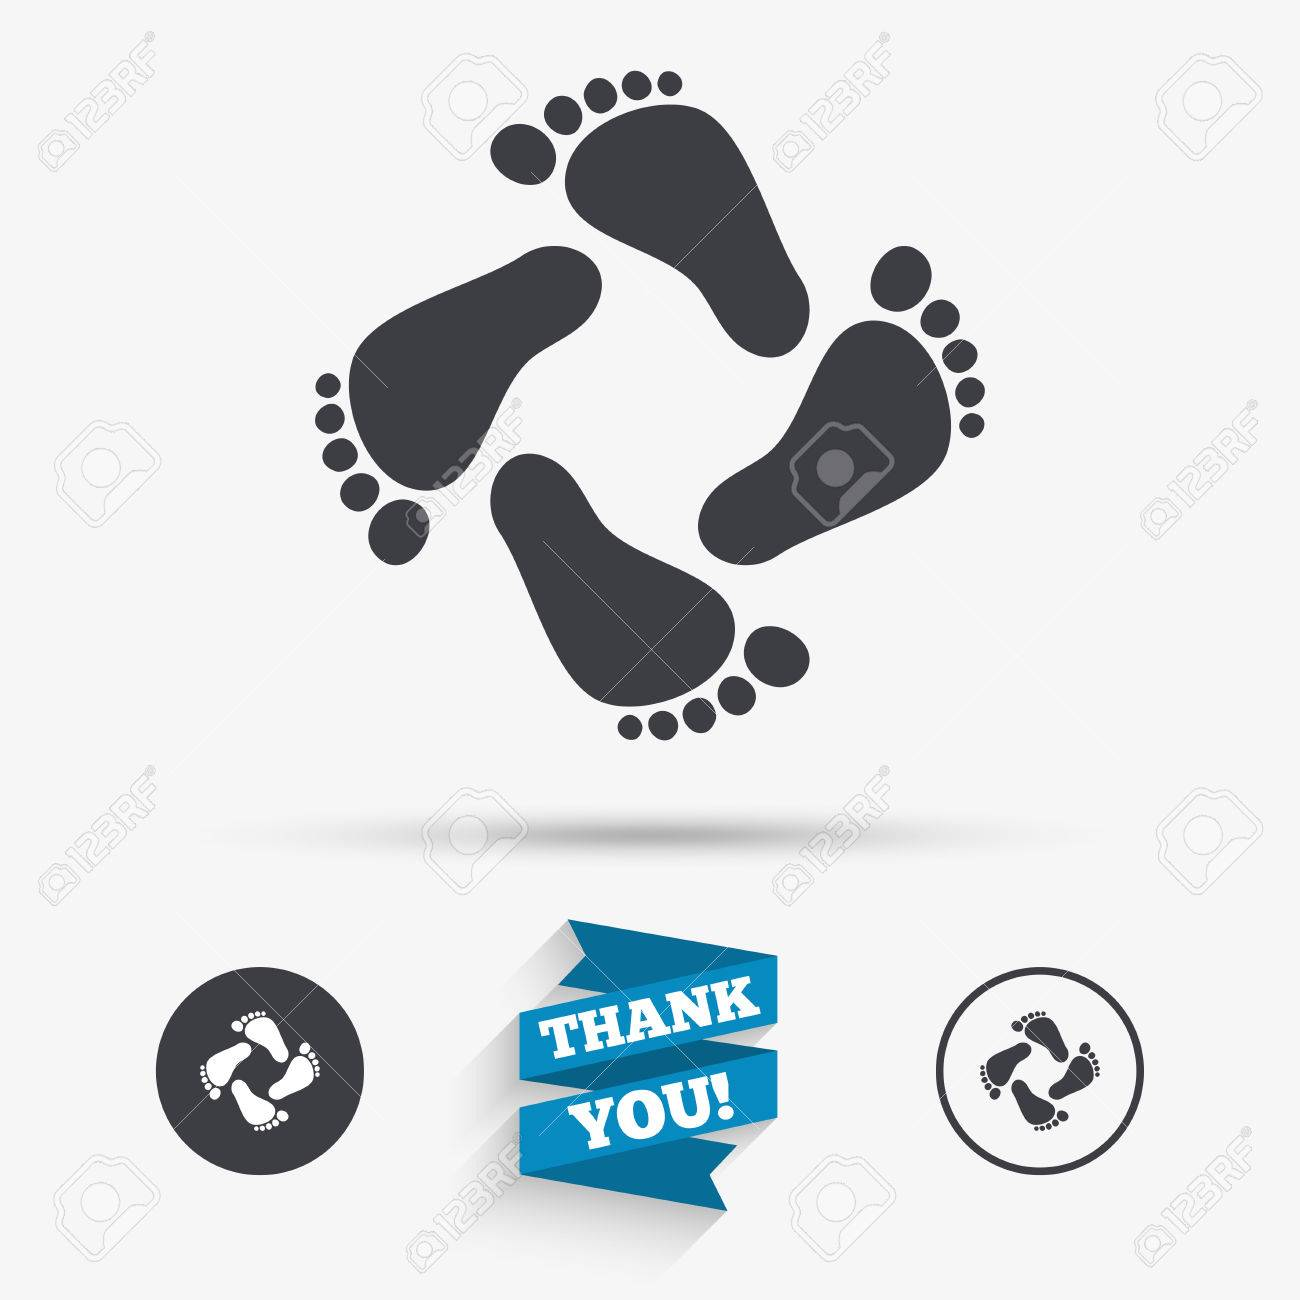 Baby footprints icon child barefoot steps toddler feet symbol baby footprints icon child barefoot steps toddler feet symbol flat icons buttons buycottarizona Images